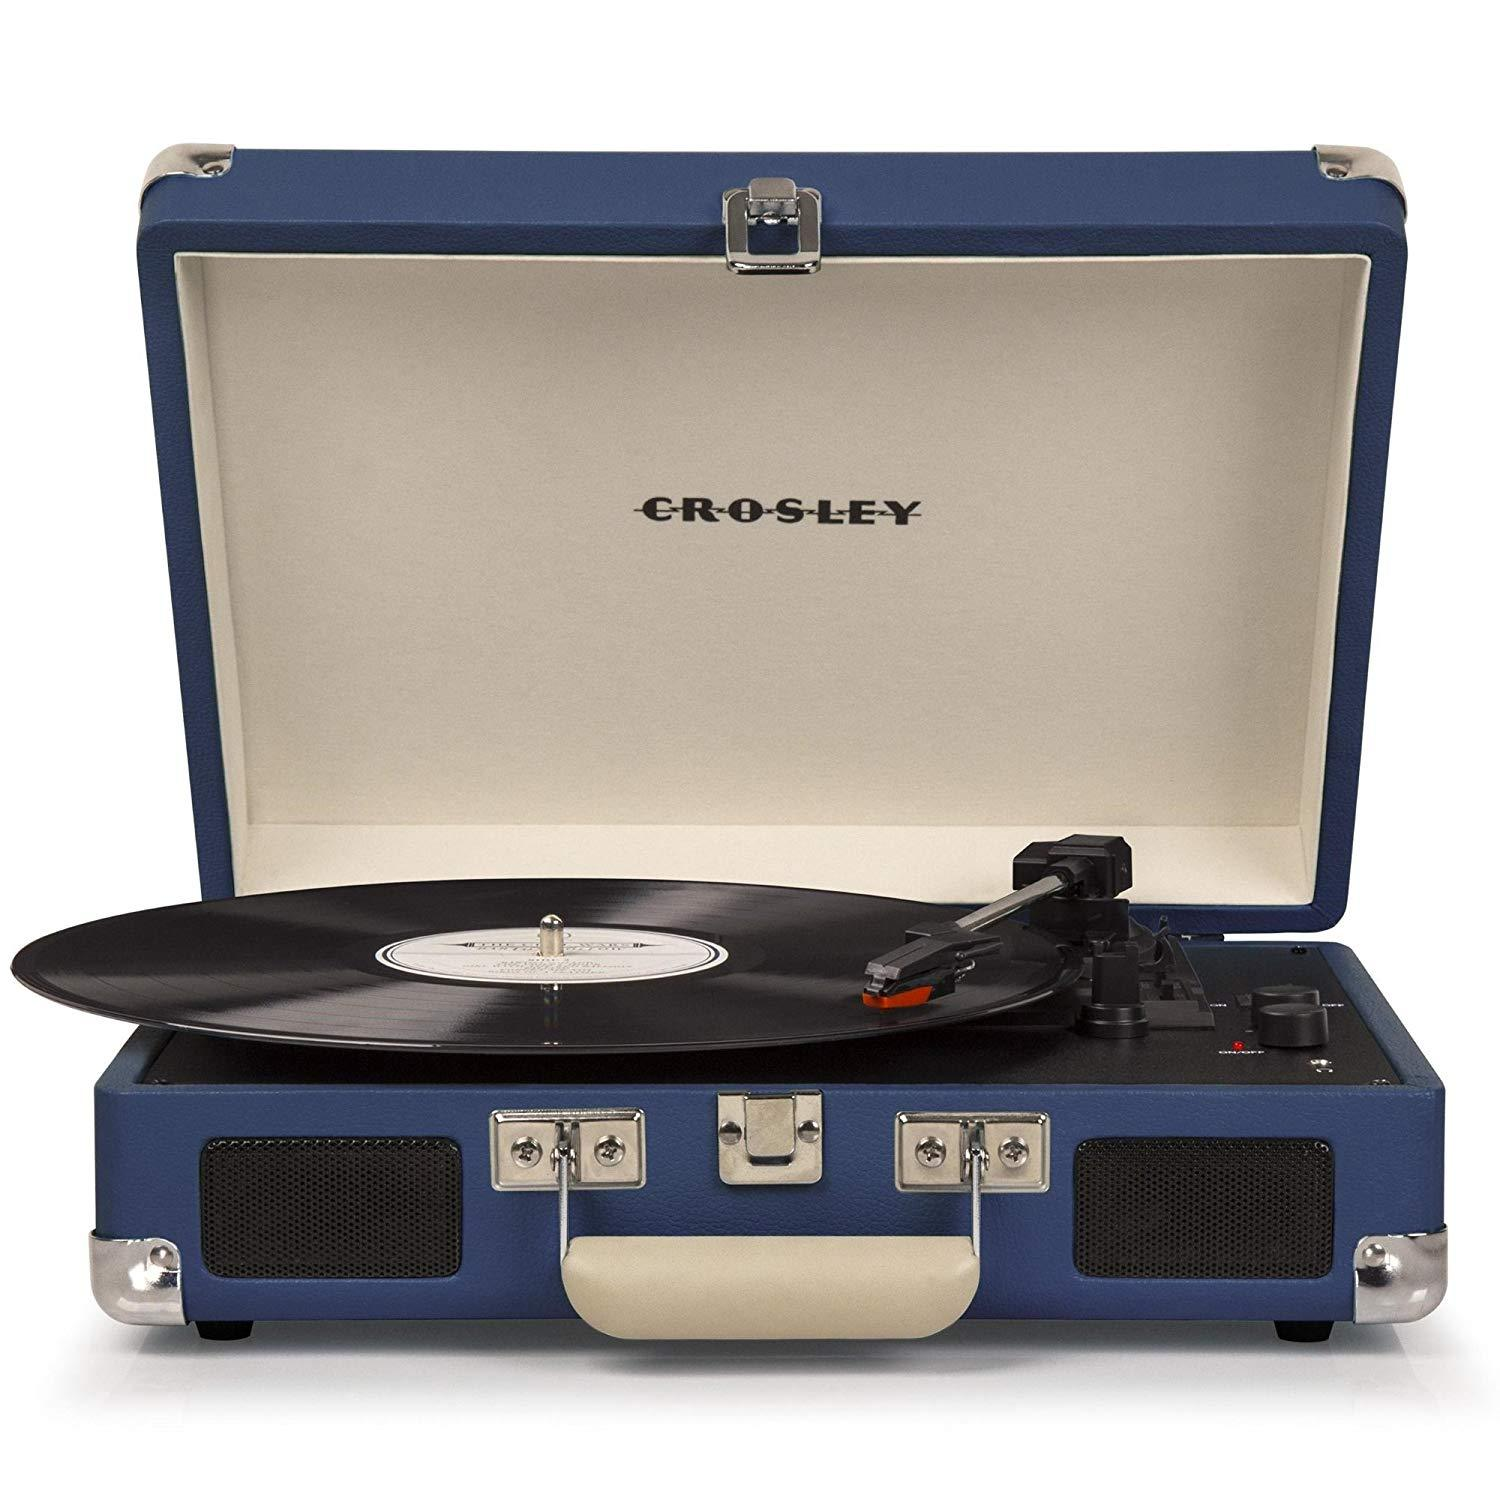 PORTABLE STEREO RECORD PLAYER TURNTABLE IN HAWAIIAN BLUE ELVIS PRESLEY 3 SPEED